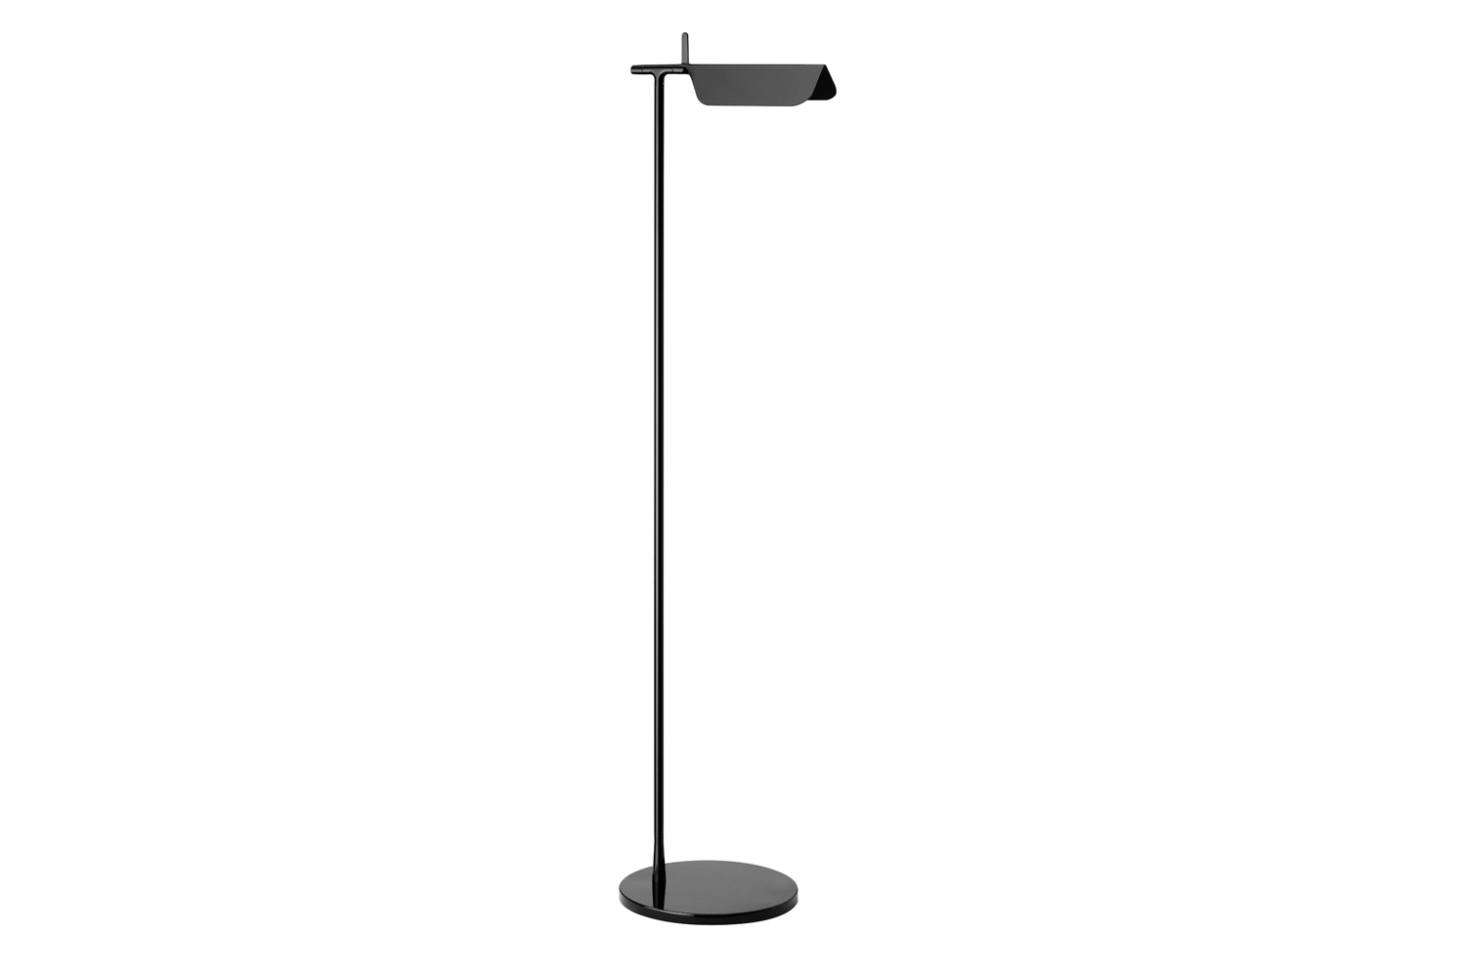 The Flos Tab Floor Lamp is designed by British team Edward Barber and Jay Osgerby for Flos in 2007 and comes with black and white; $495 at Design Within Reach.